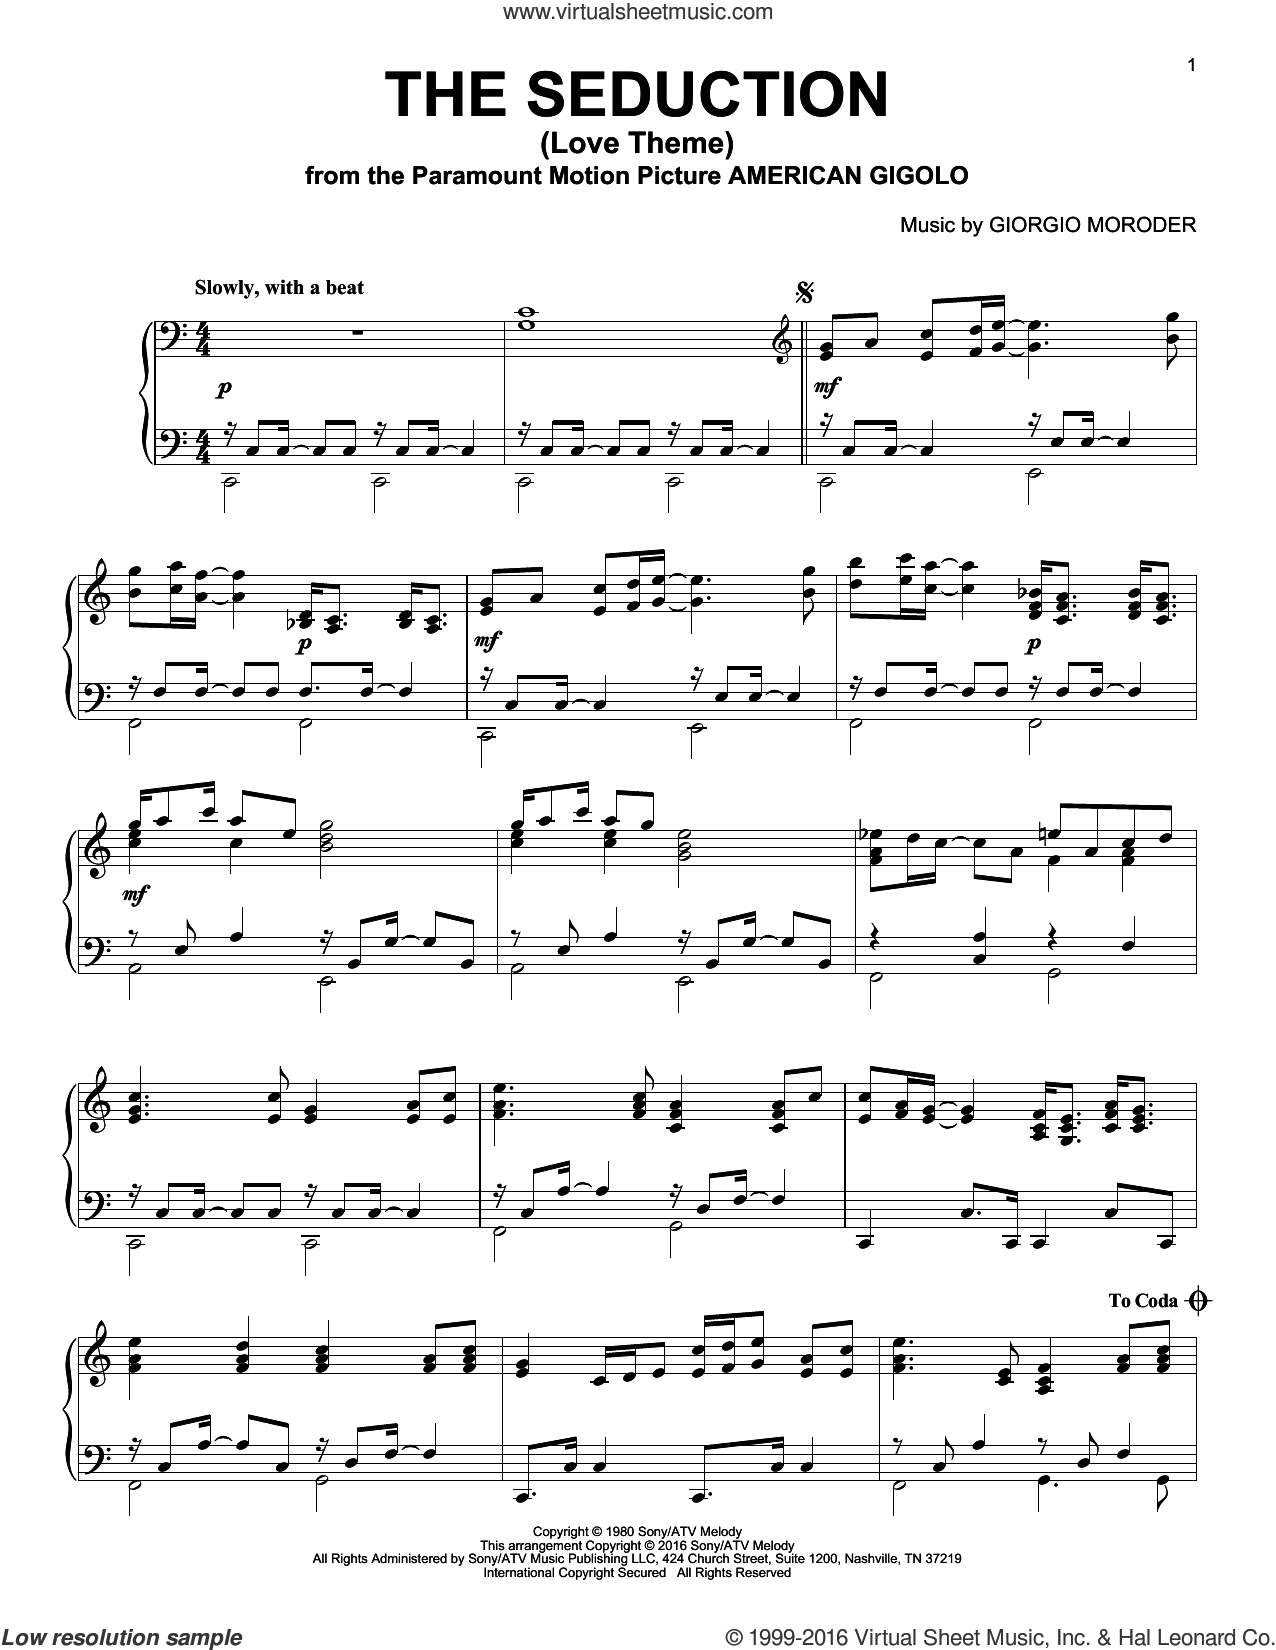 The Seduction (Love Theme) sheet music for piano solo by Giorgio Moroder. Score Image Preview.